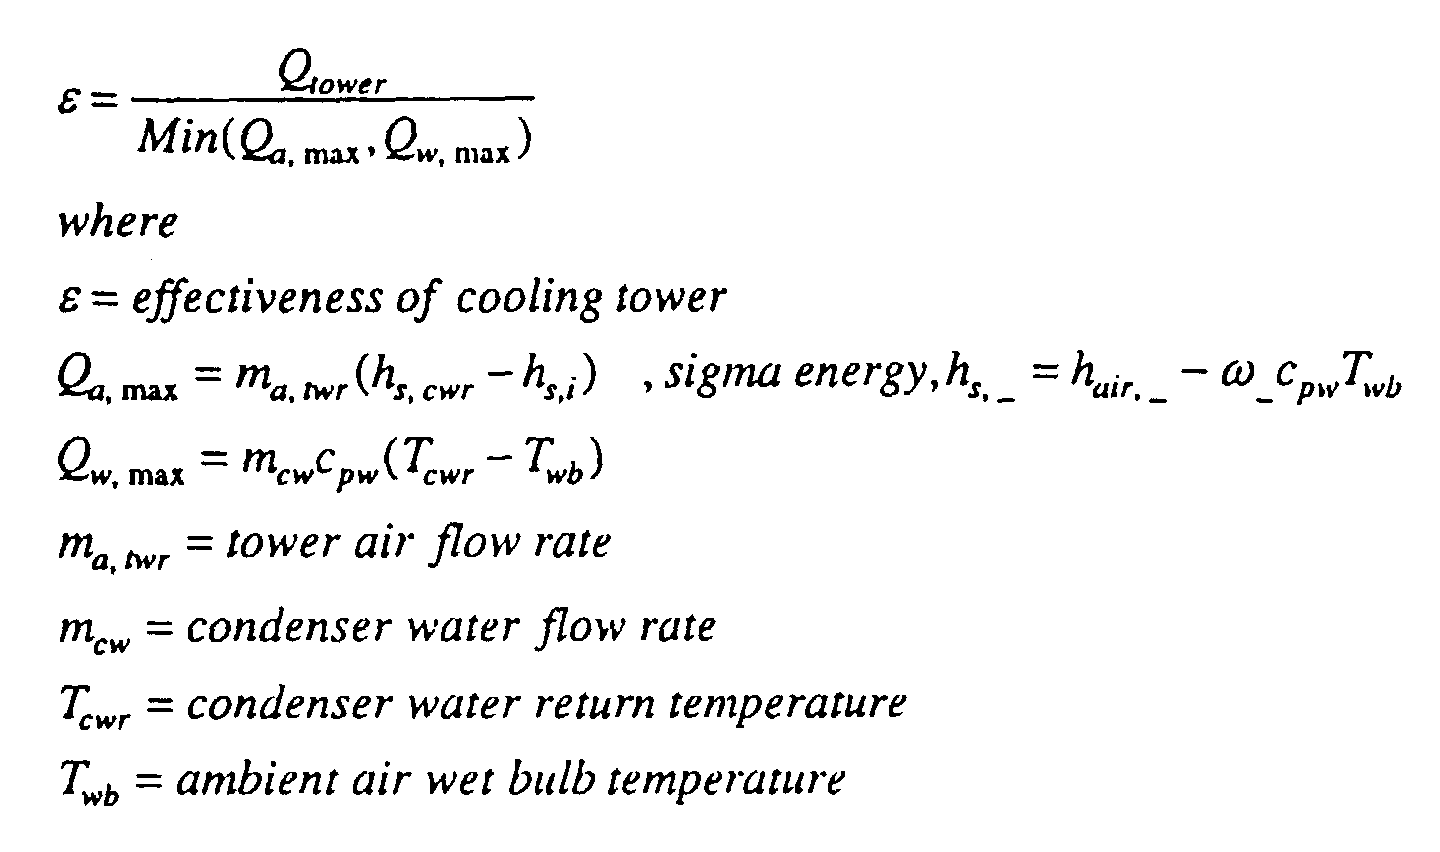 water flow by determining the coolingtower effectiveness by using the #313131